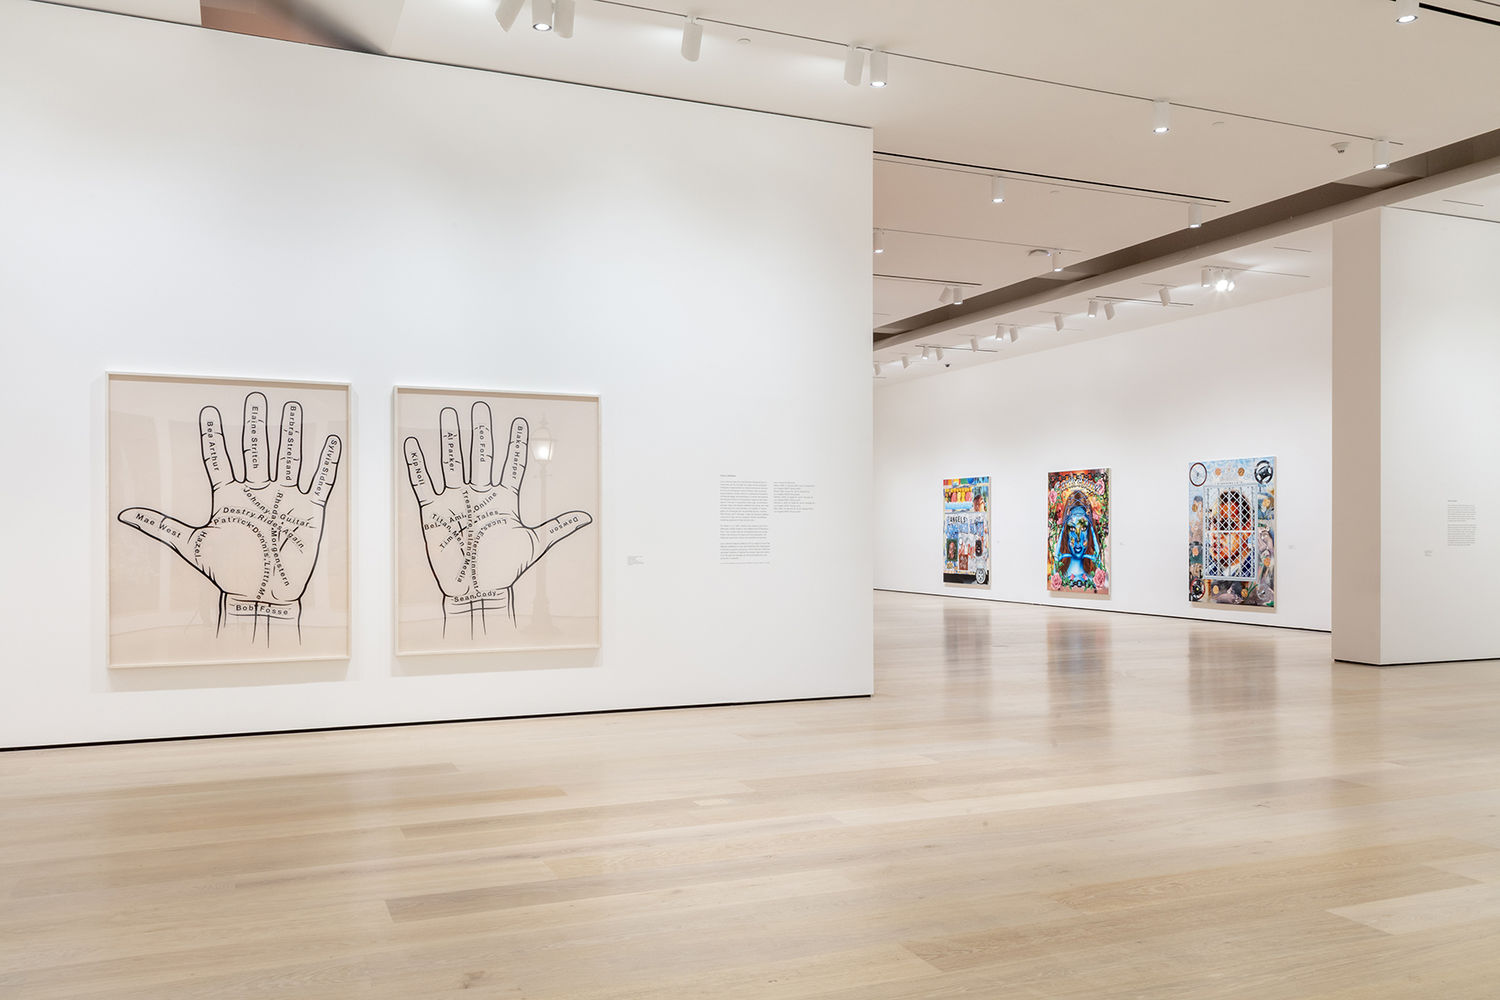 An image inside a white-walled gallery. To the left of the image are two photographs, with a left and right palm in each photo. There are various names written on the palms. In the background are three paintings rendered in an airbrush, lowrider car style.